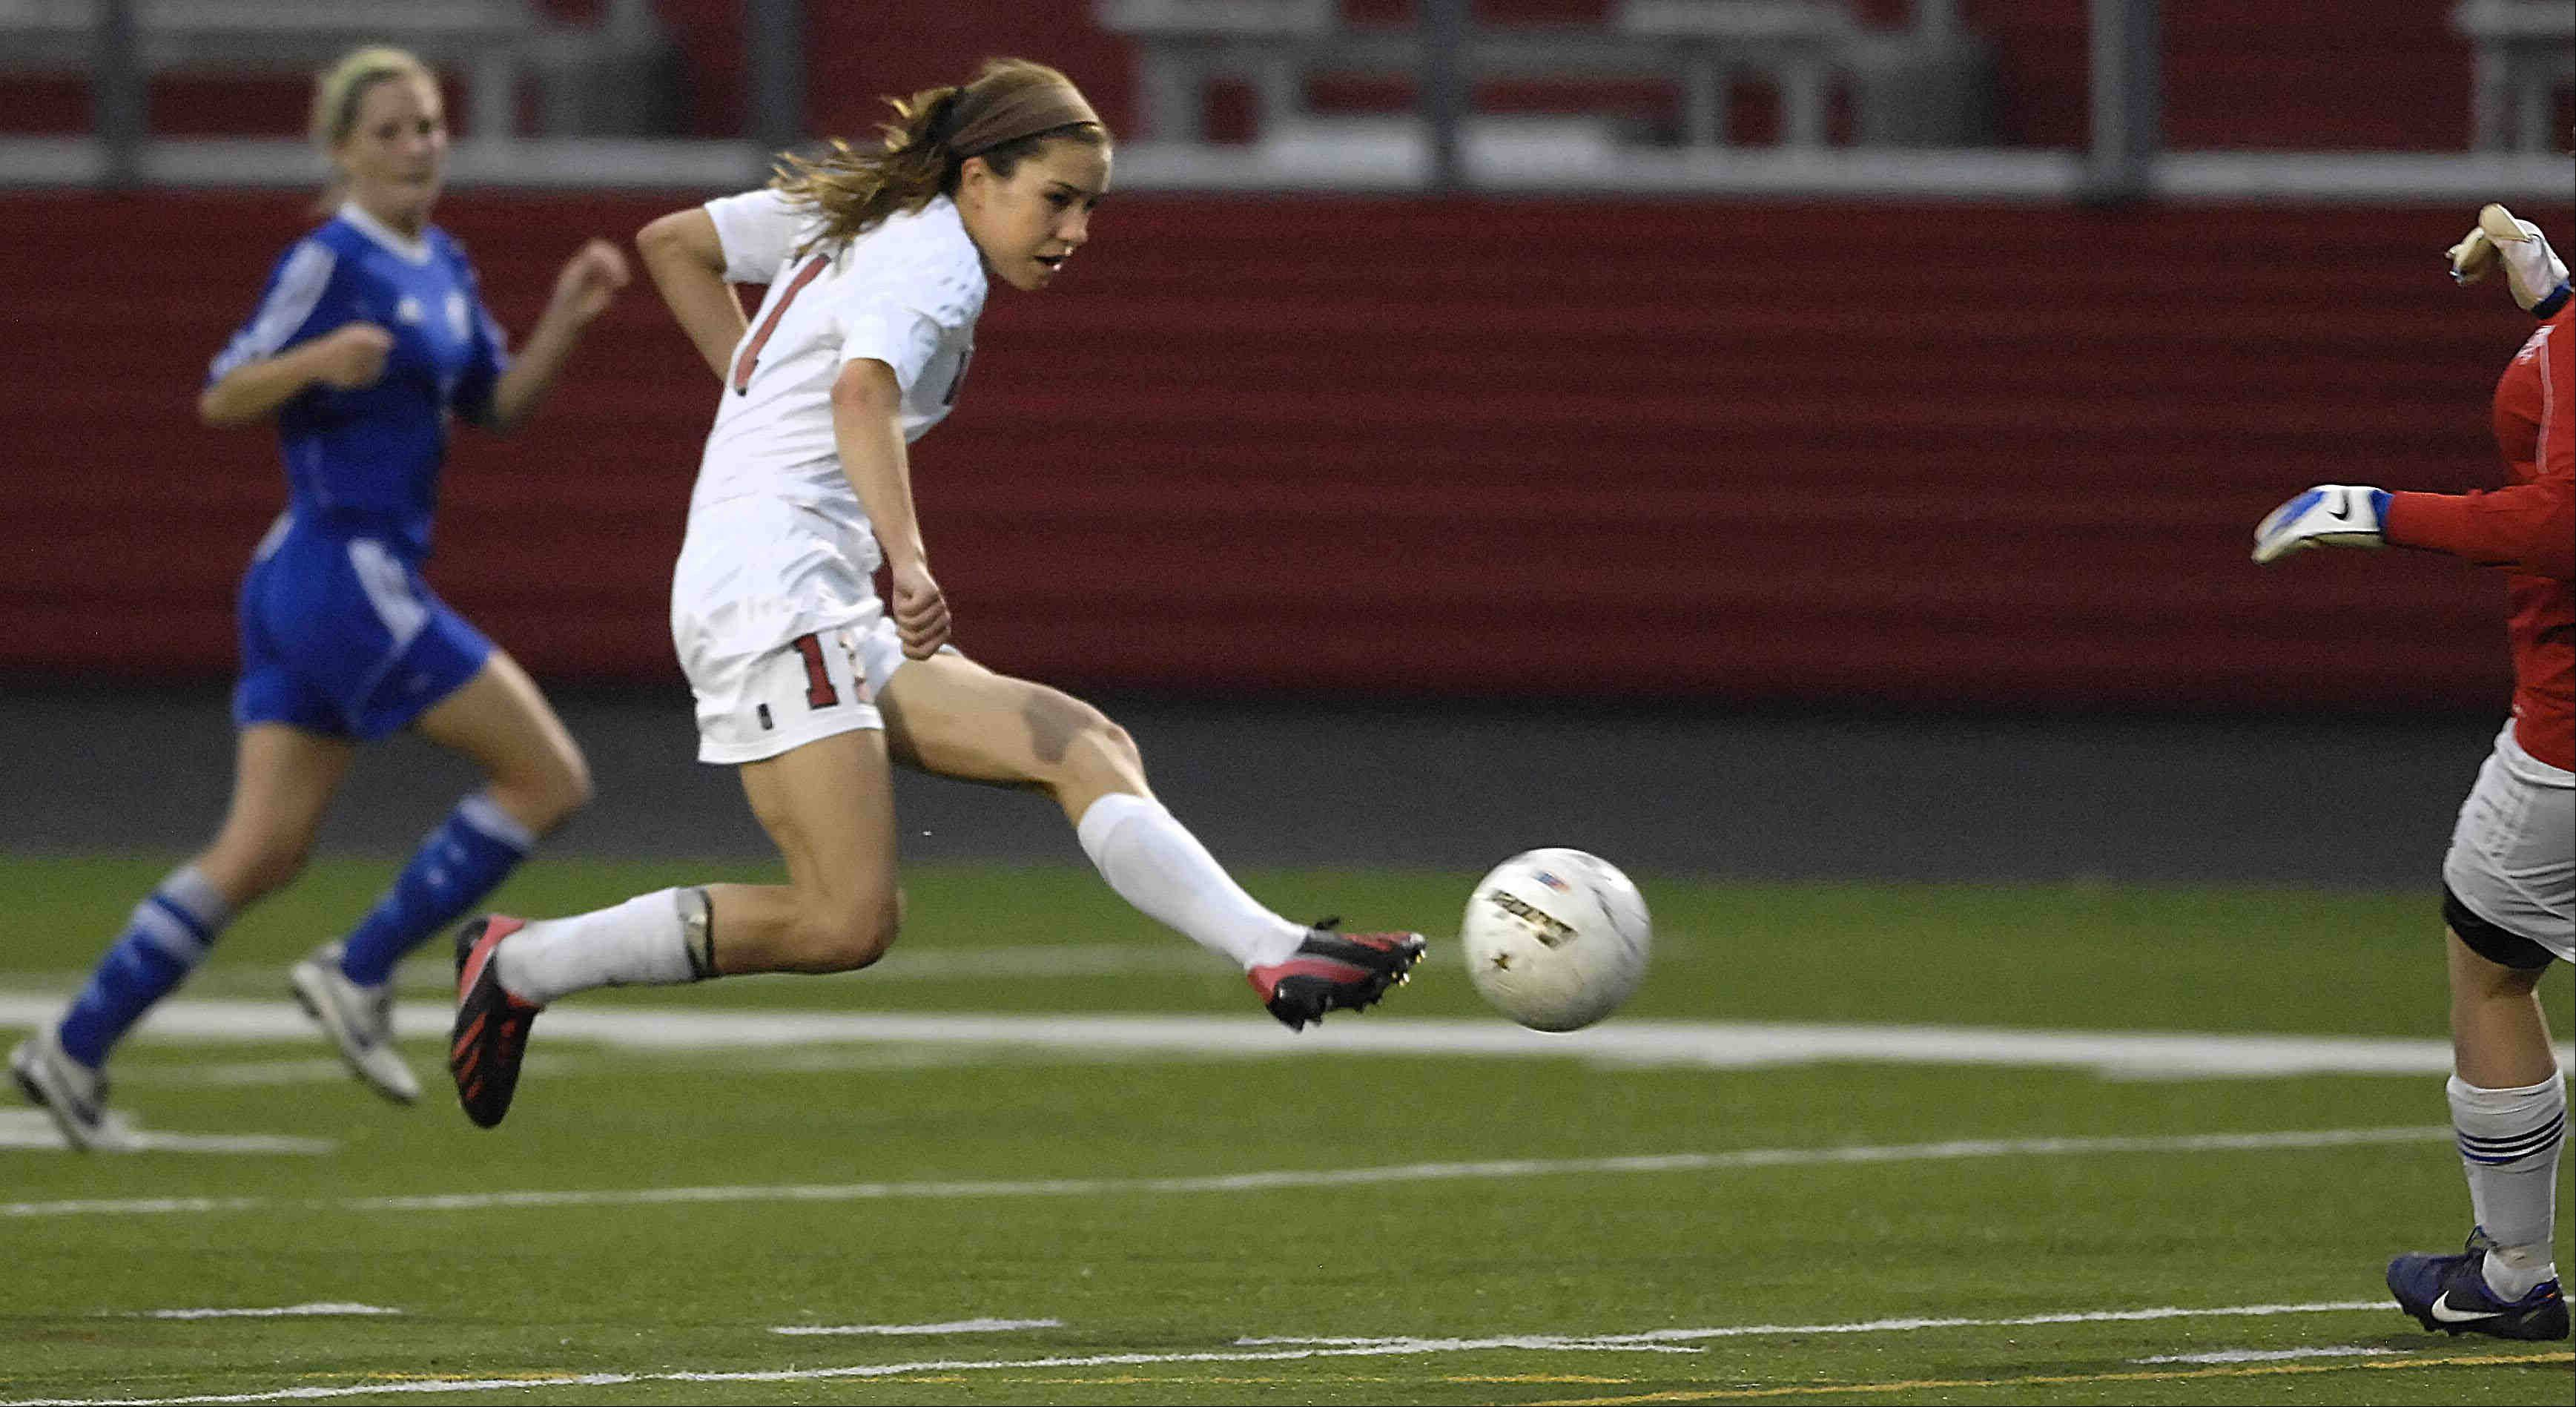 Barrington's Jenna Szczesny kicks a first-half goal against St. Charles North Tuesday in the supersectional game in Barrington, before it was delayed by lightning.